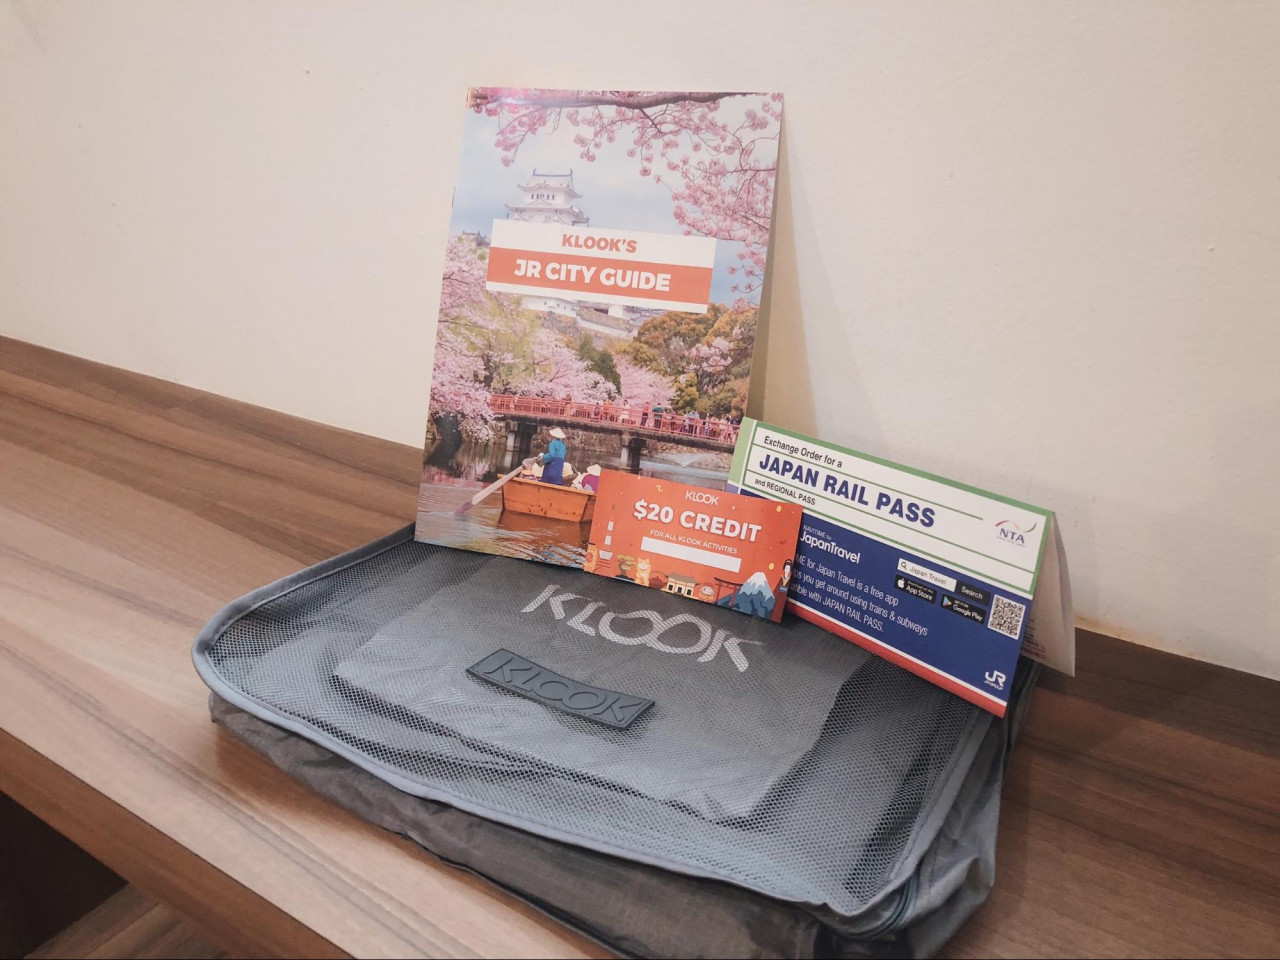 Japan Rail Pass with Klook